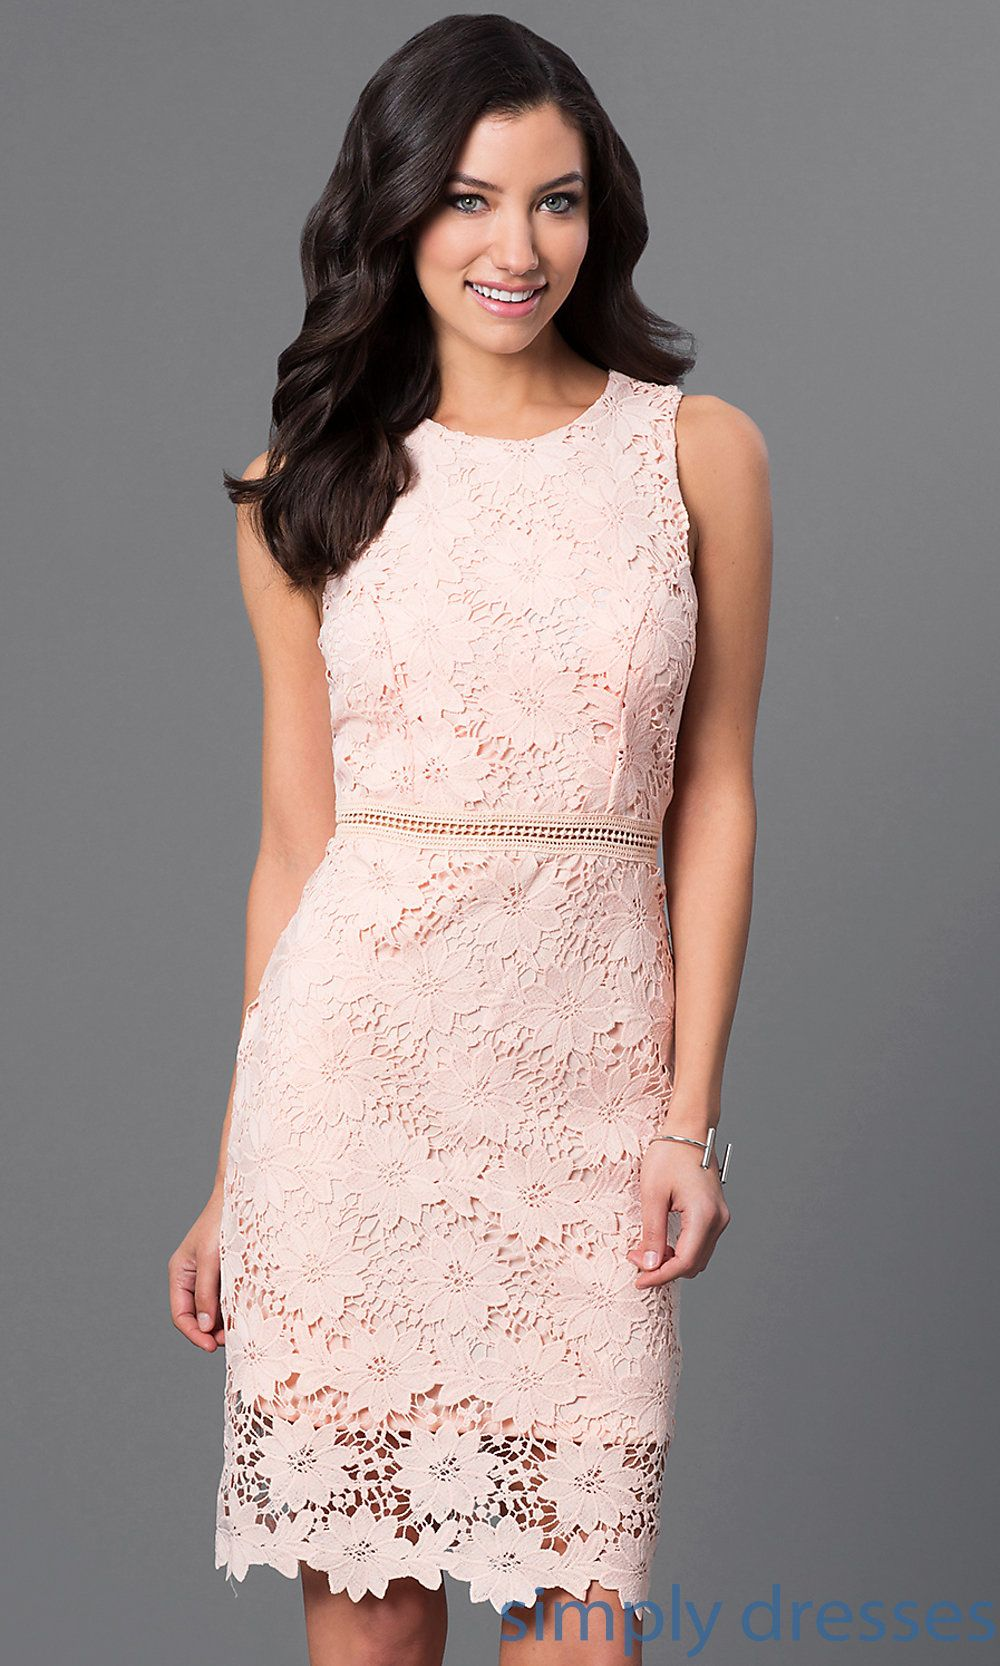 0be6a44e51 Shop Simply Dresses for homecoming party dresses